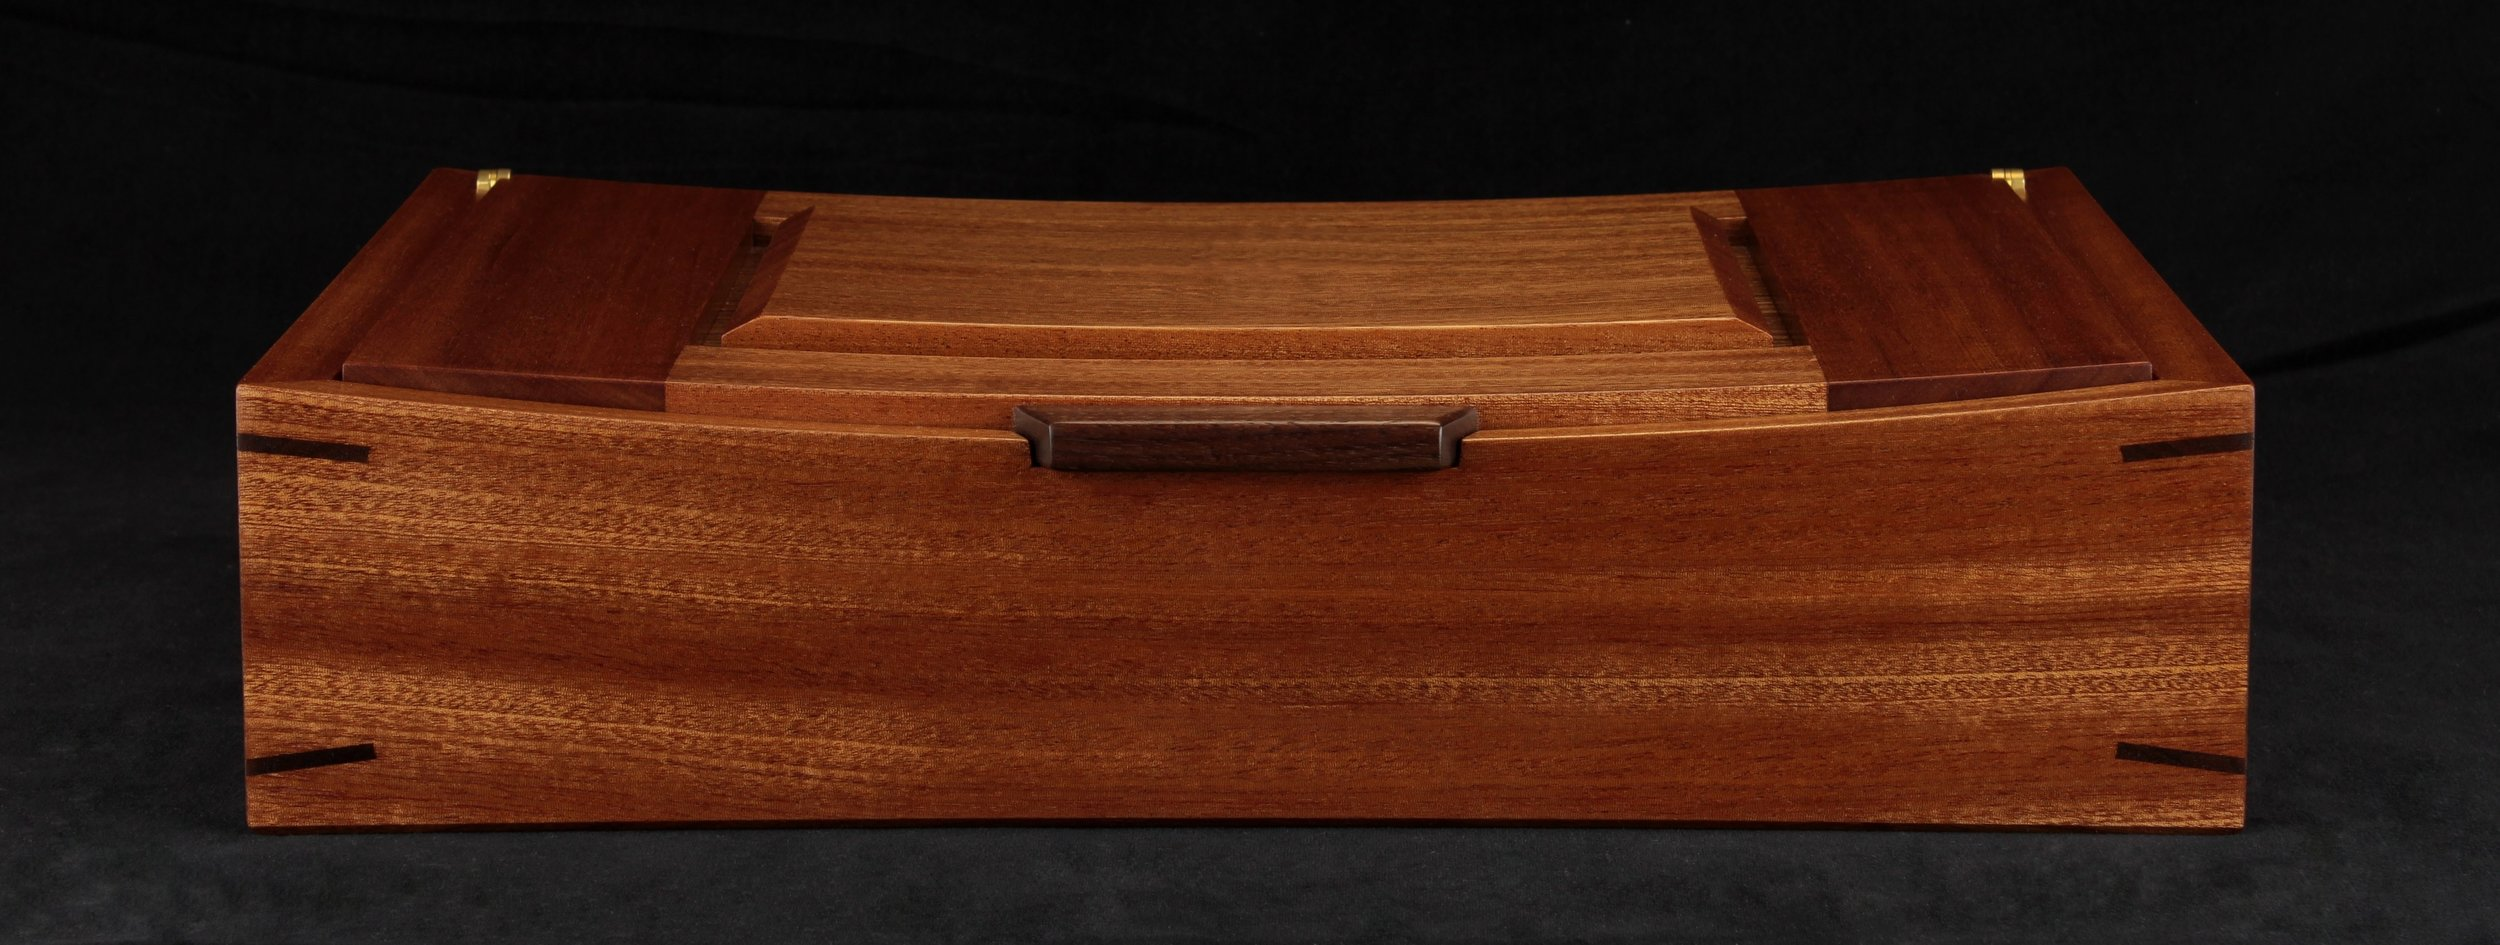 The actual sapele and walnut box completed